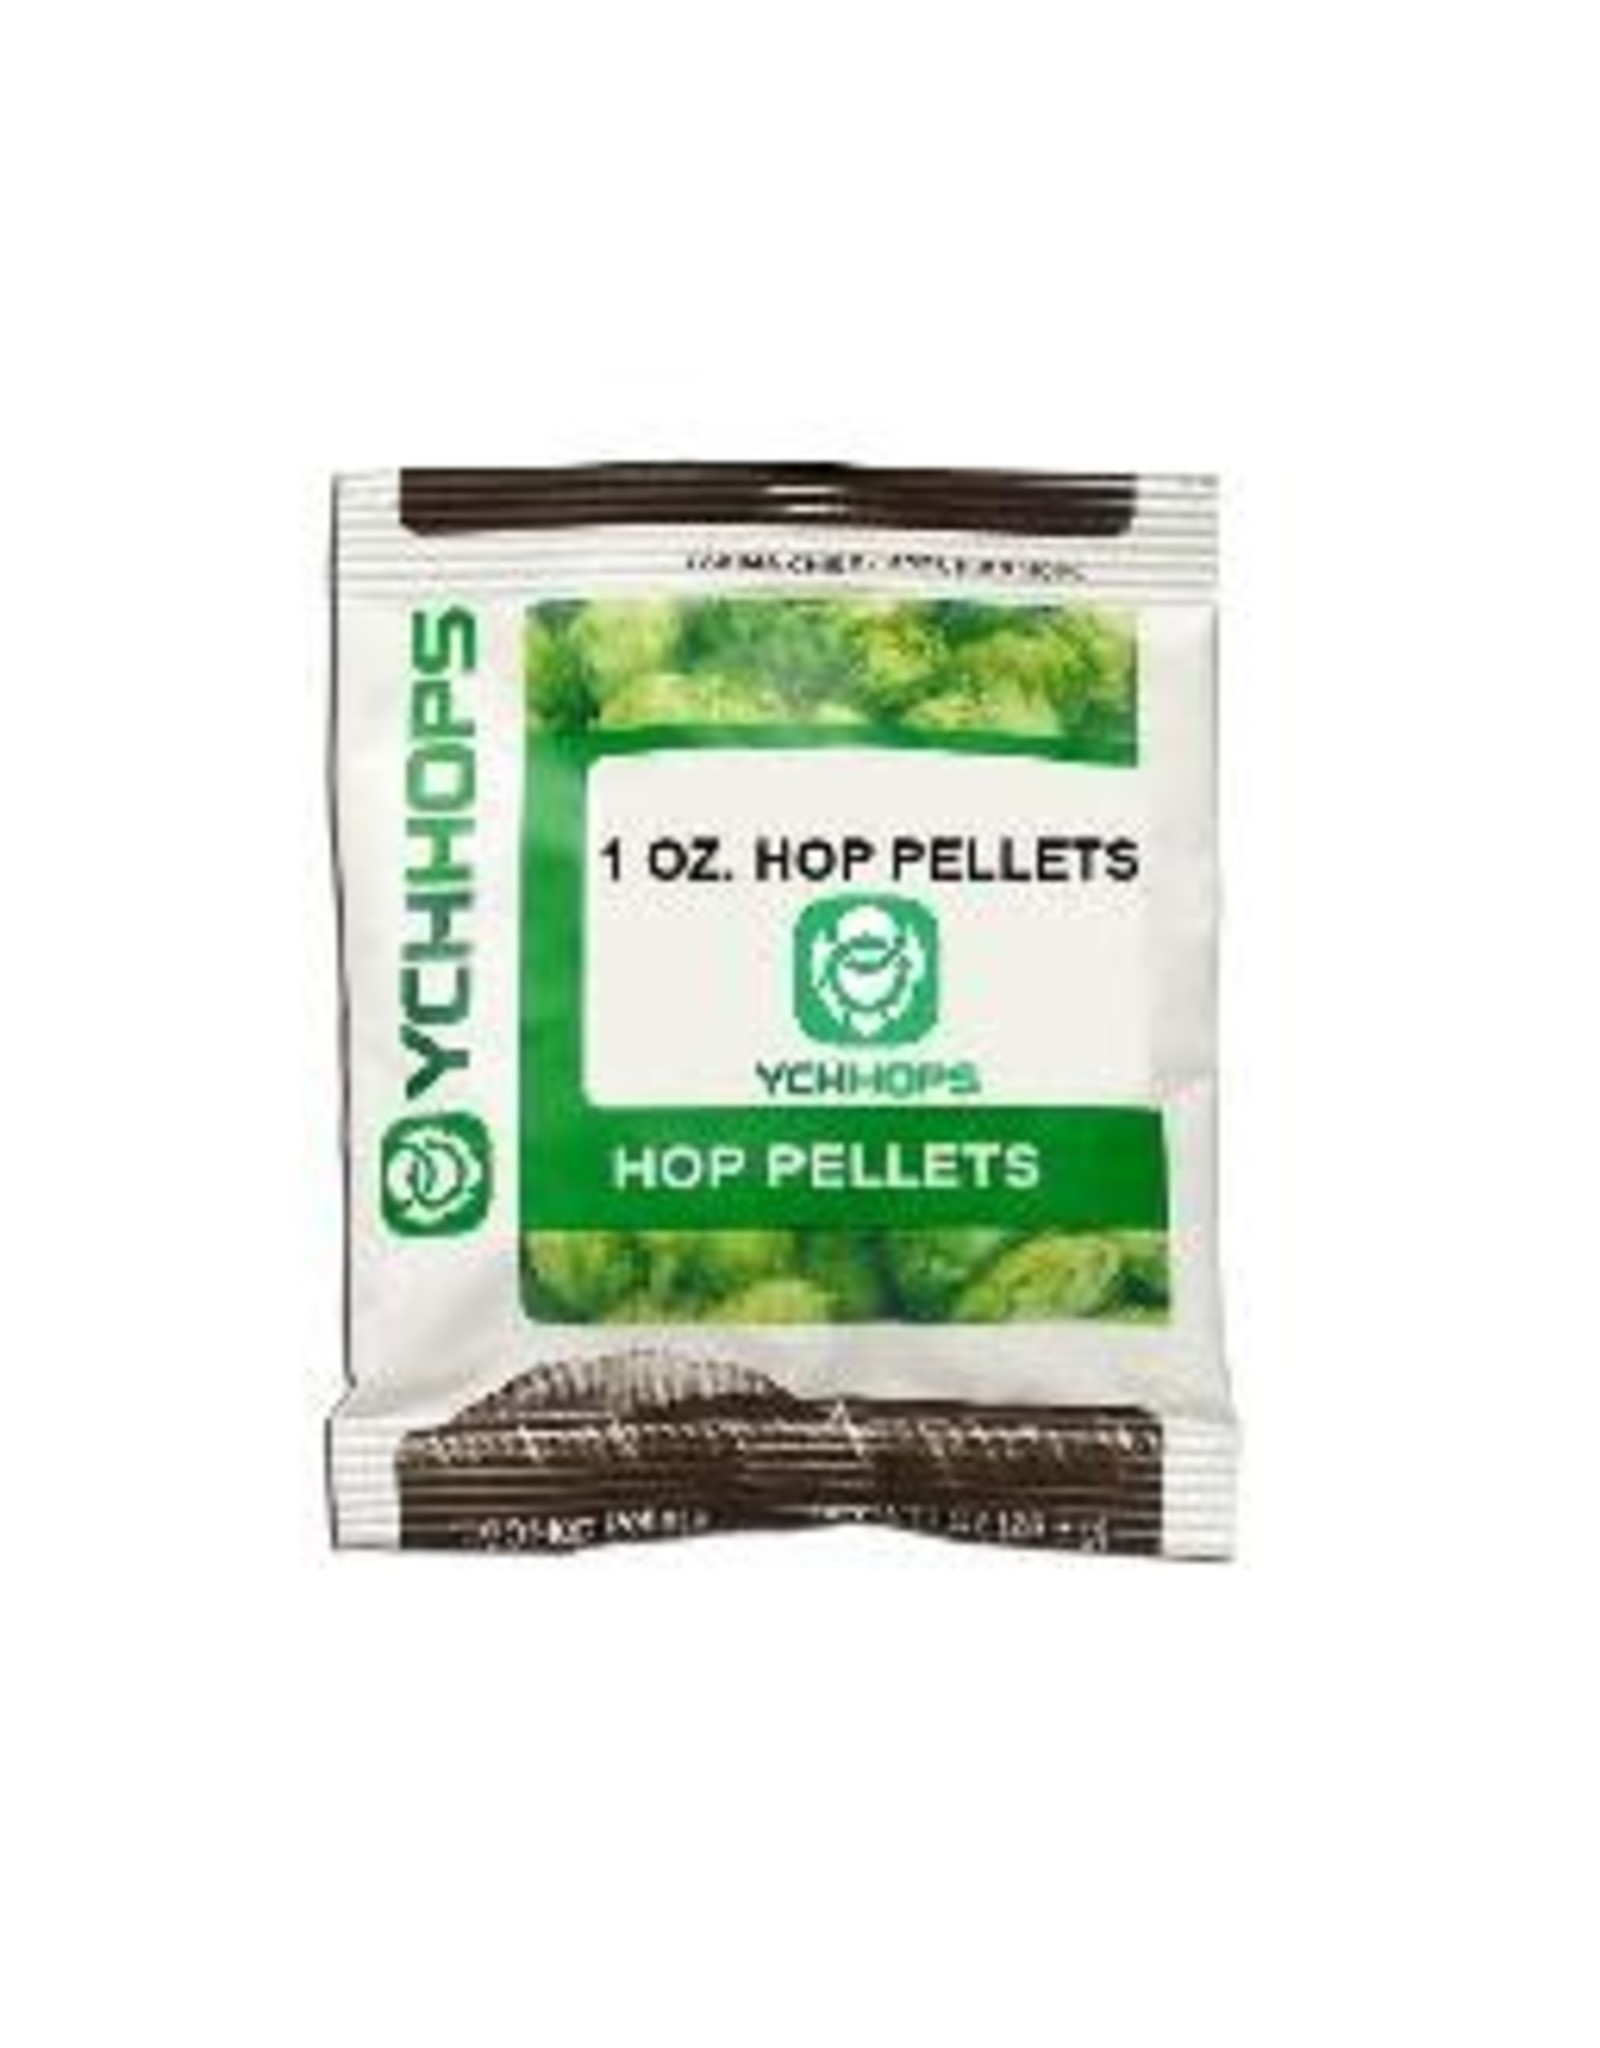 GALENA HOP PELLETS 1 oz. PACKAGE